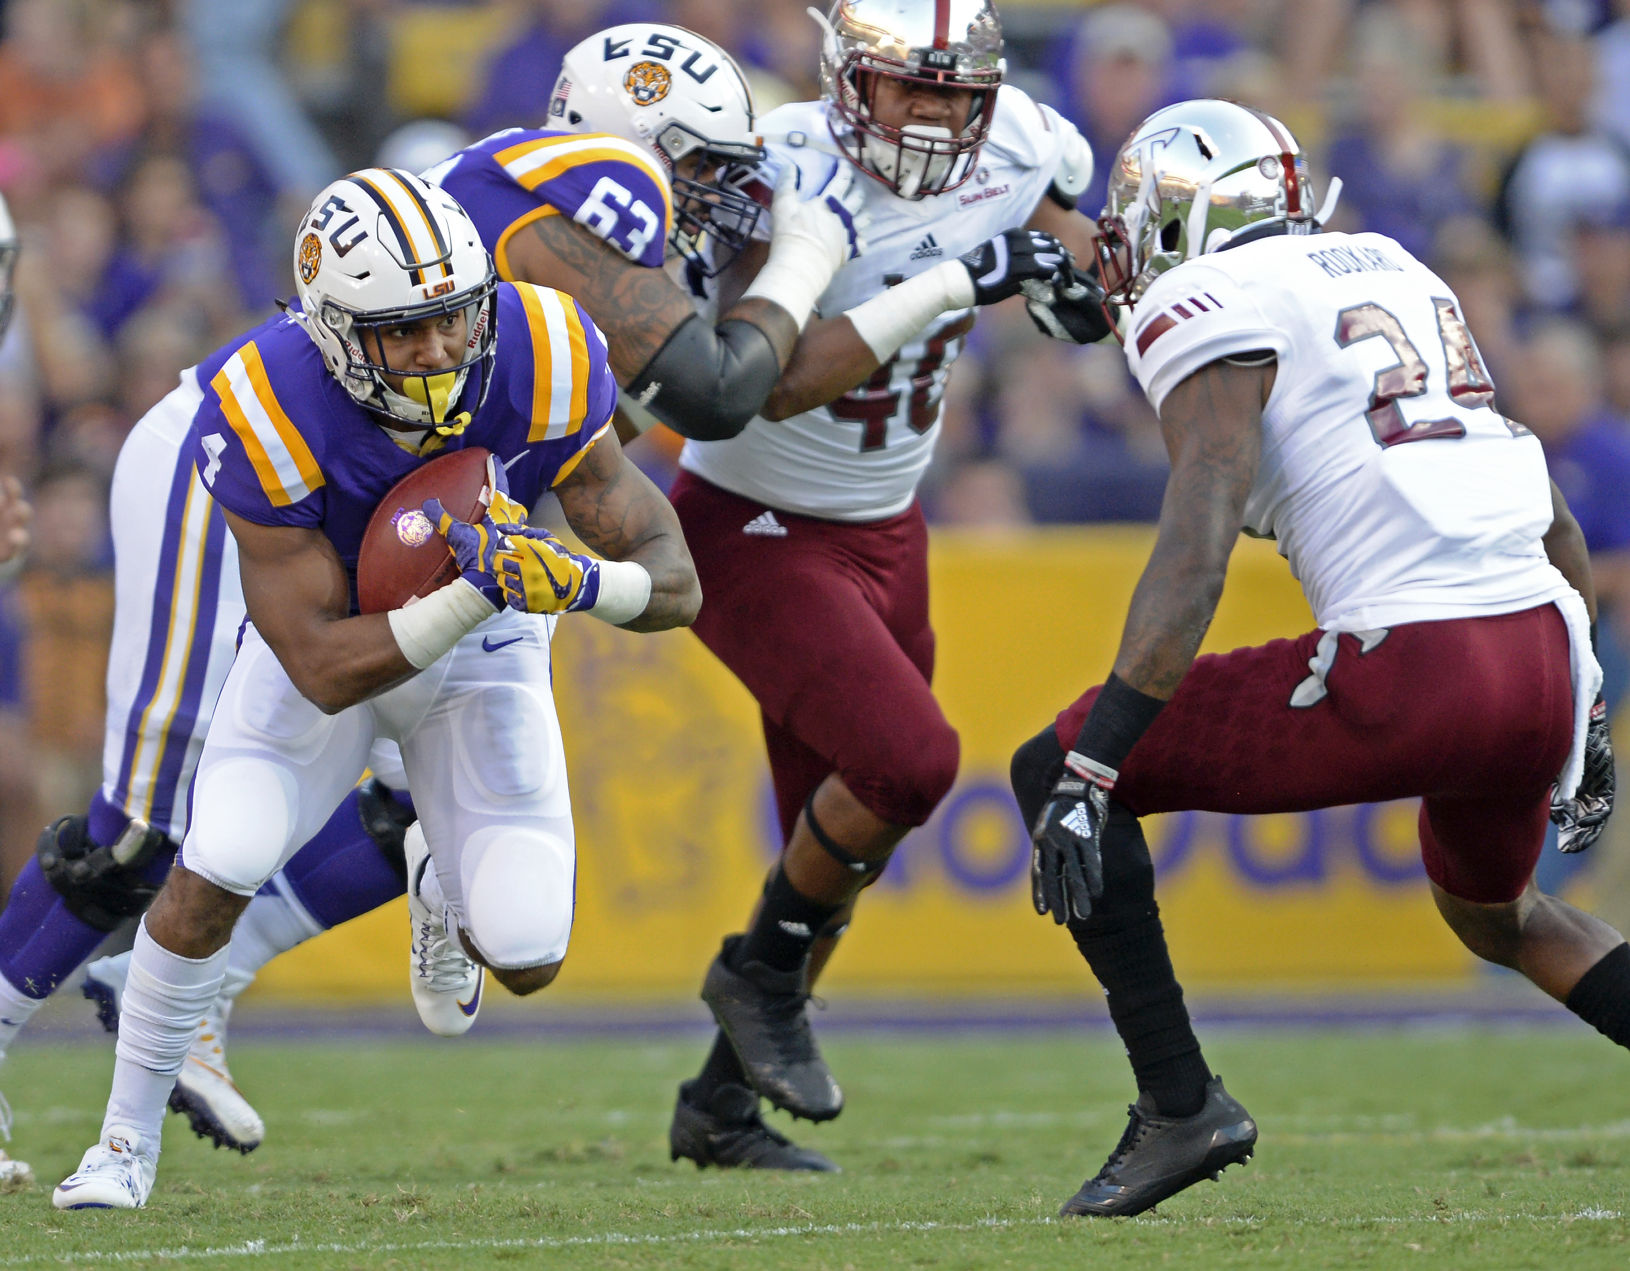 5 things we learned from LSU's loss to Troy